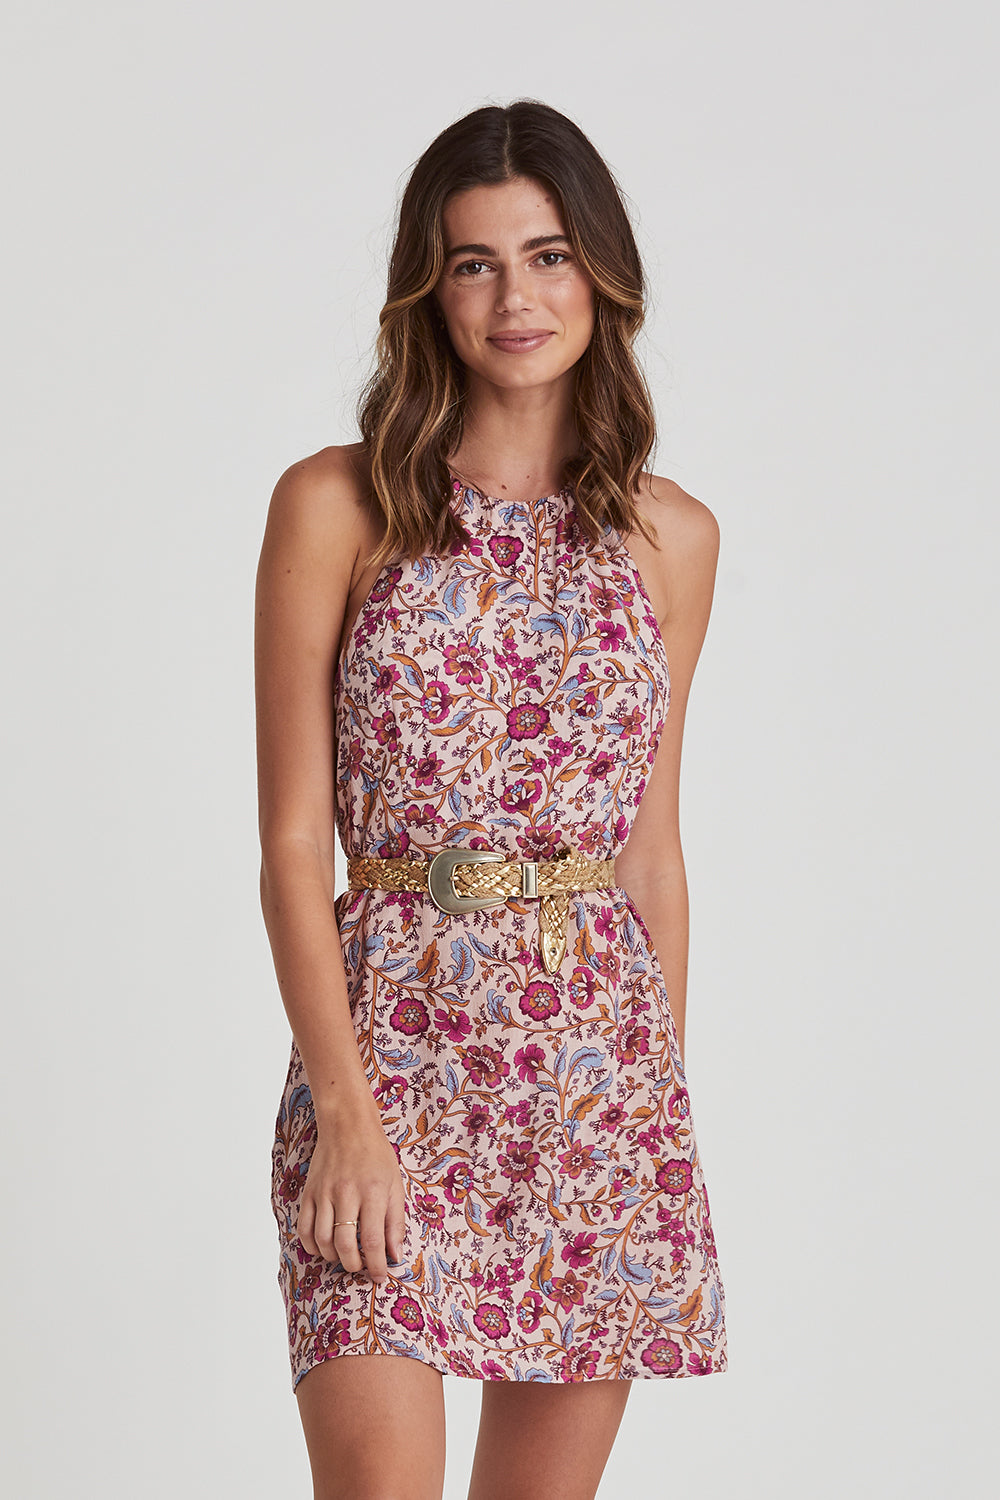 Daisy Chain Halter Dress in Candy